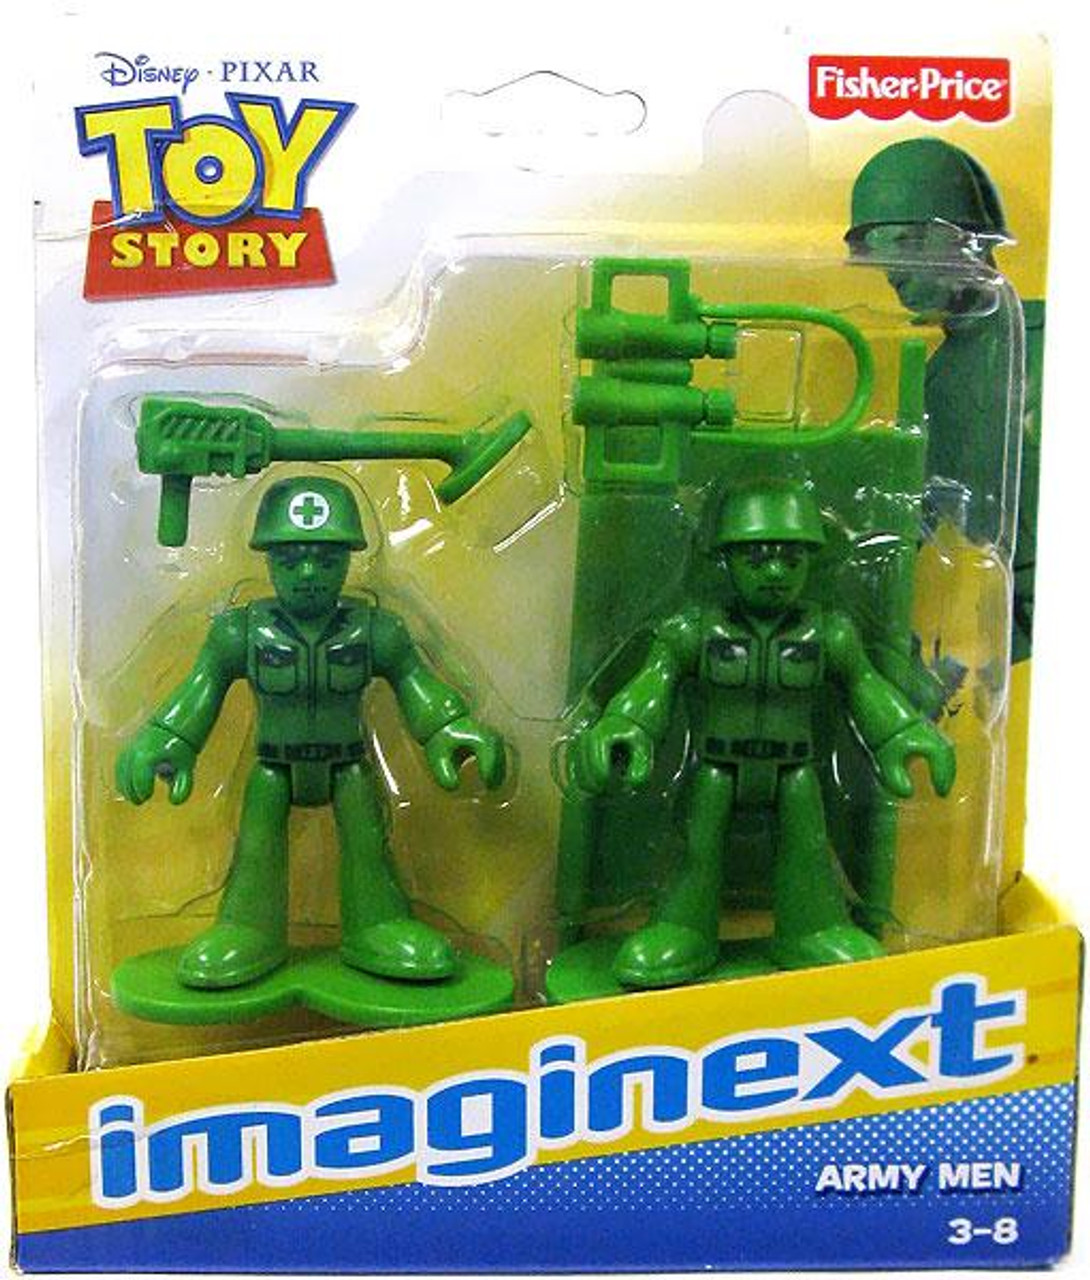 Fisher Price Toy Story Imaginext Army Men 3-Inch Mini Figures